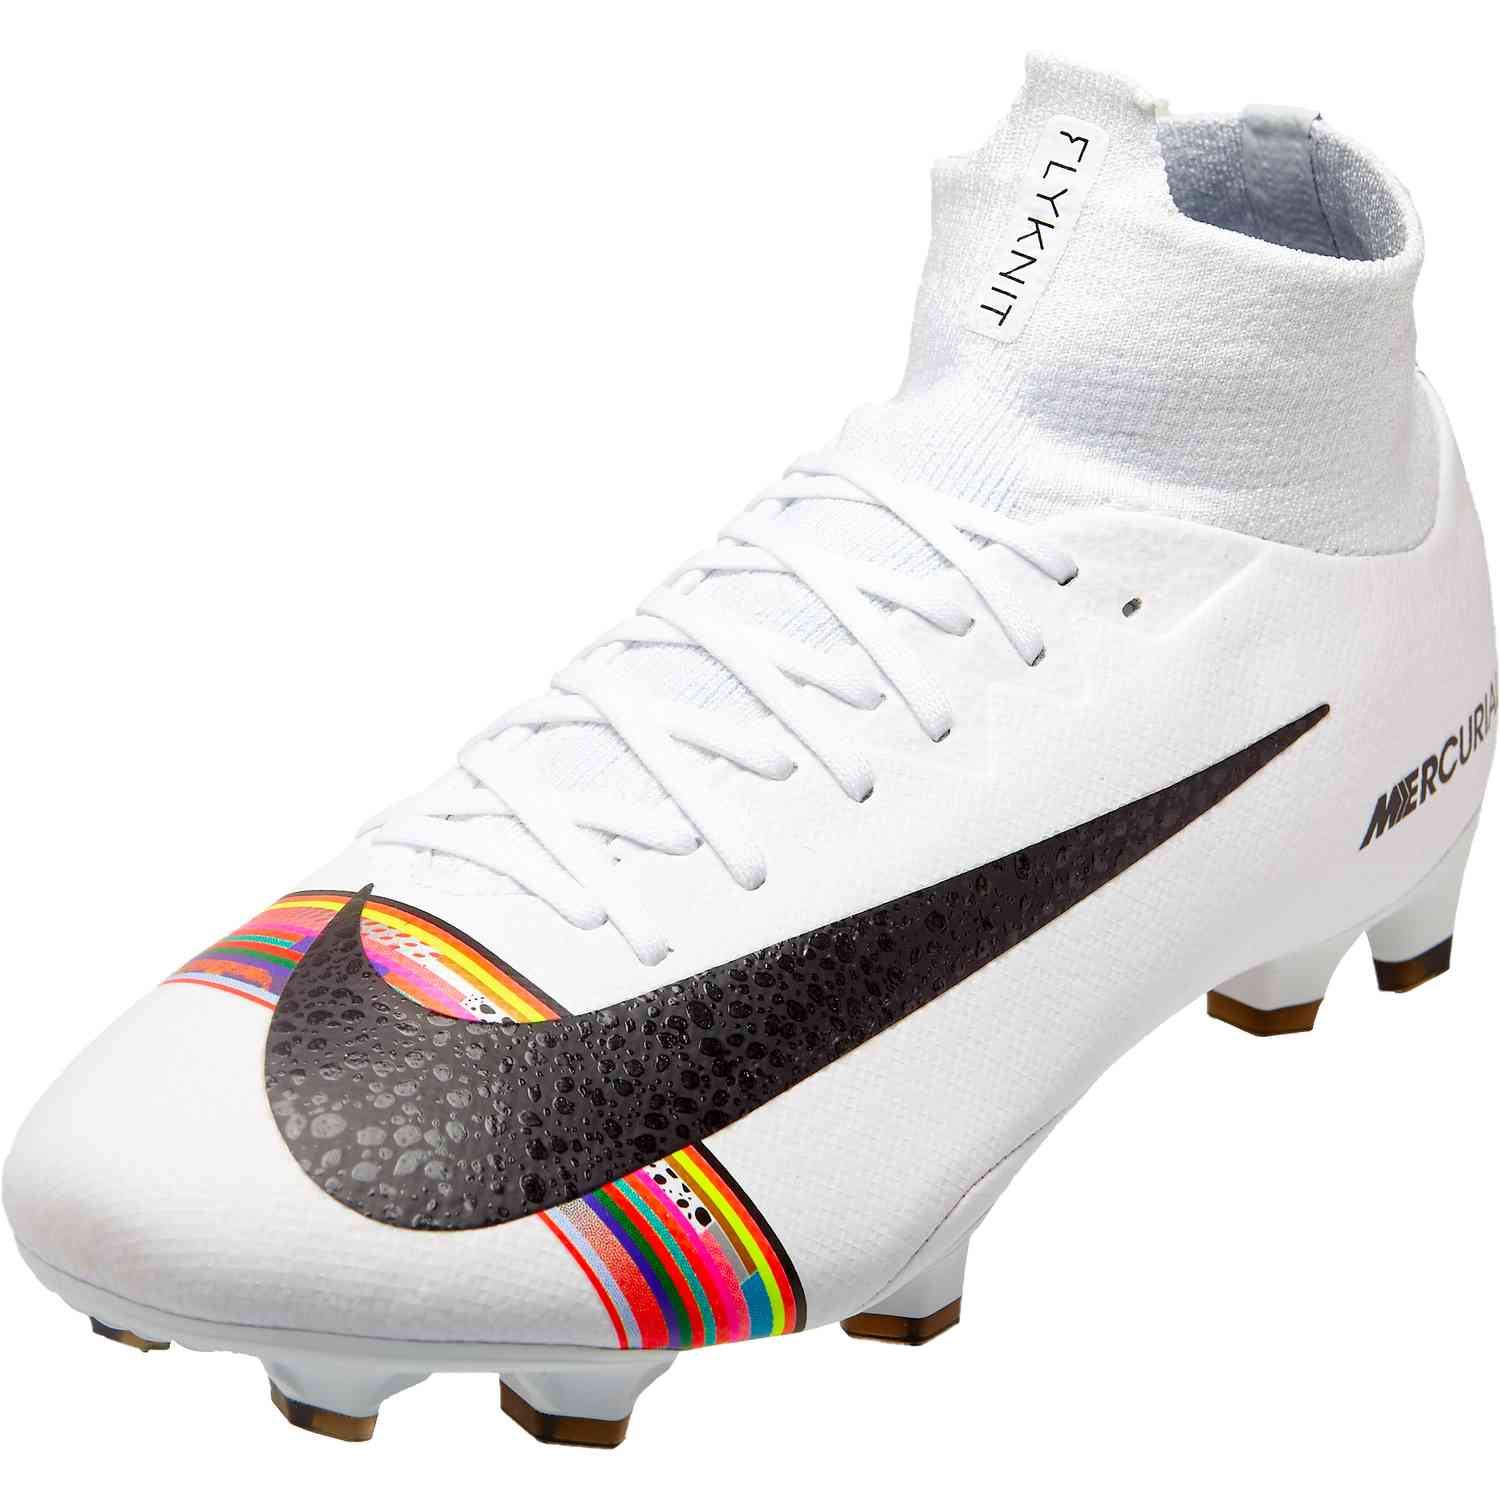 7b53b17a6 Nike Mercurial Superfly 6 Pro FG - Level Up - SoccerPro